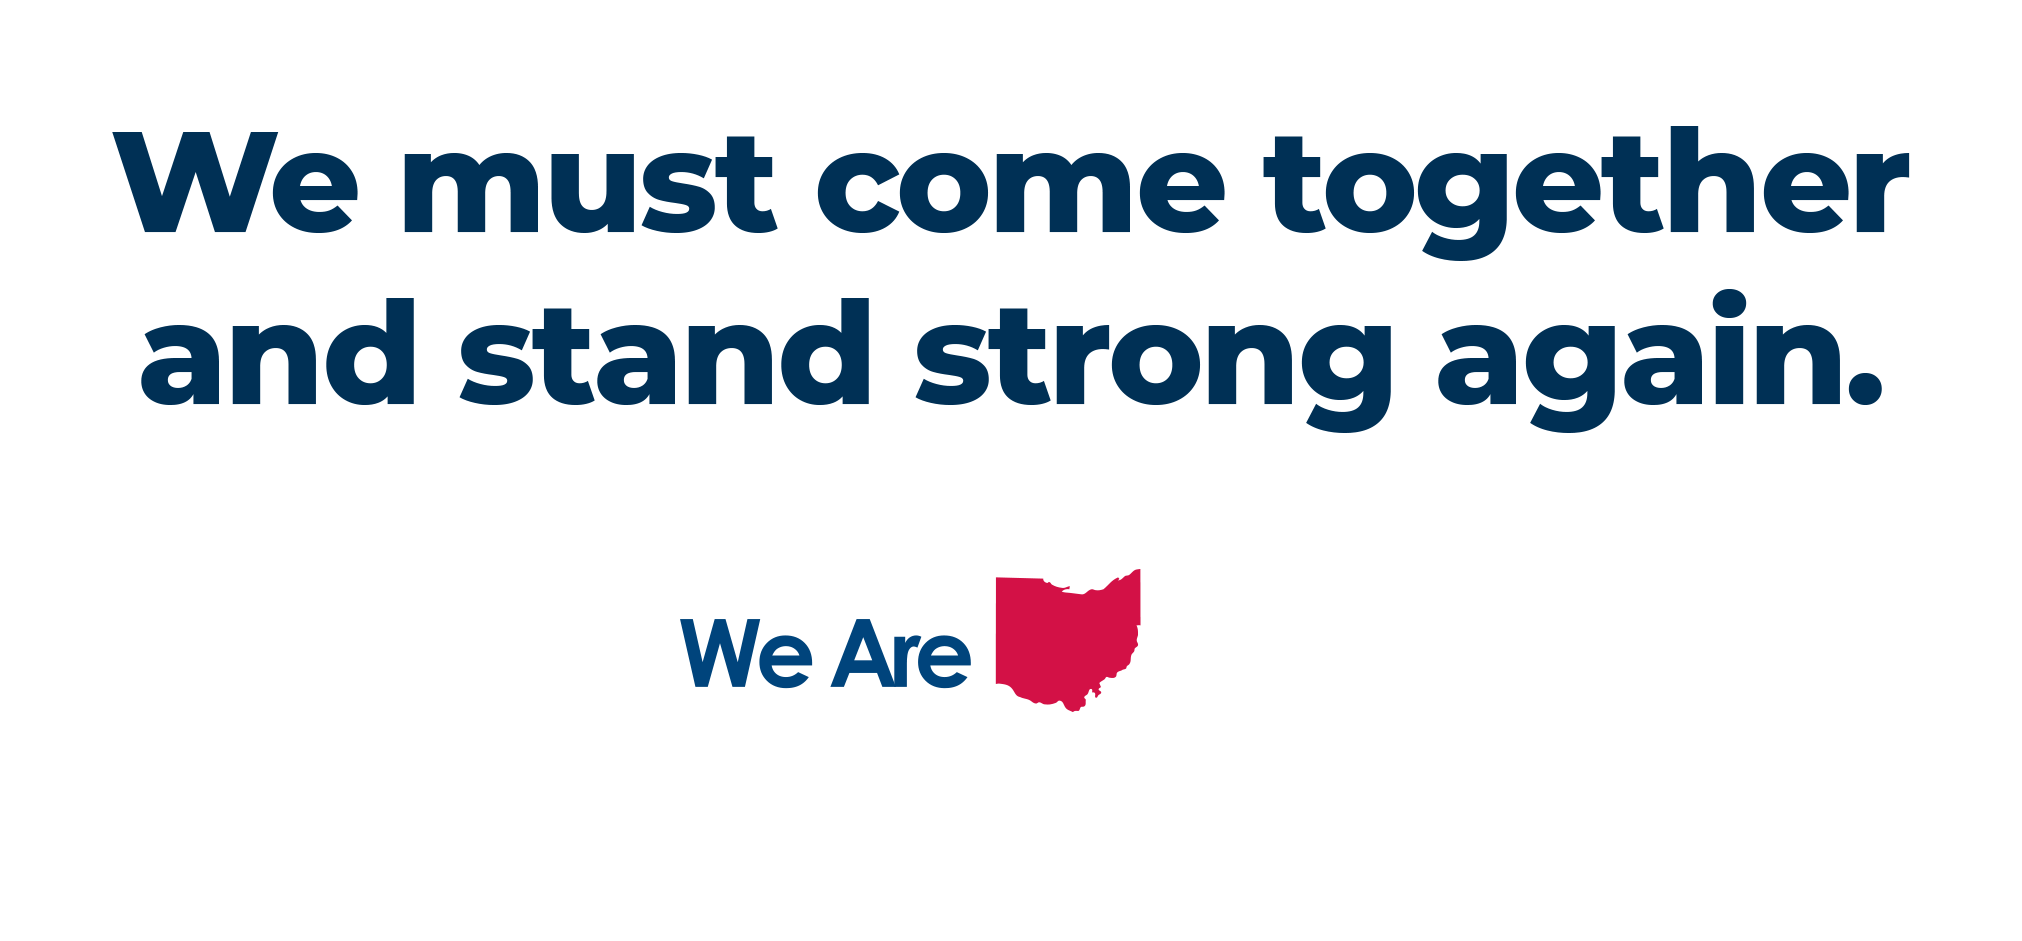 We came together in 2011 and fought off these attacks. We must come together and stand strong again.